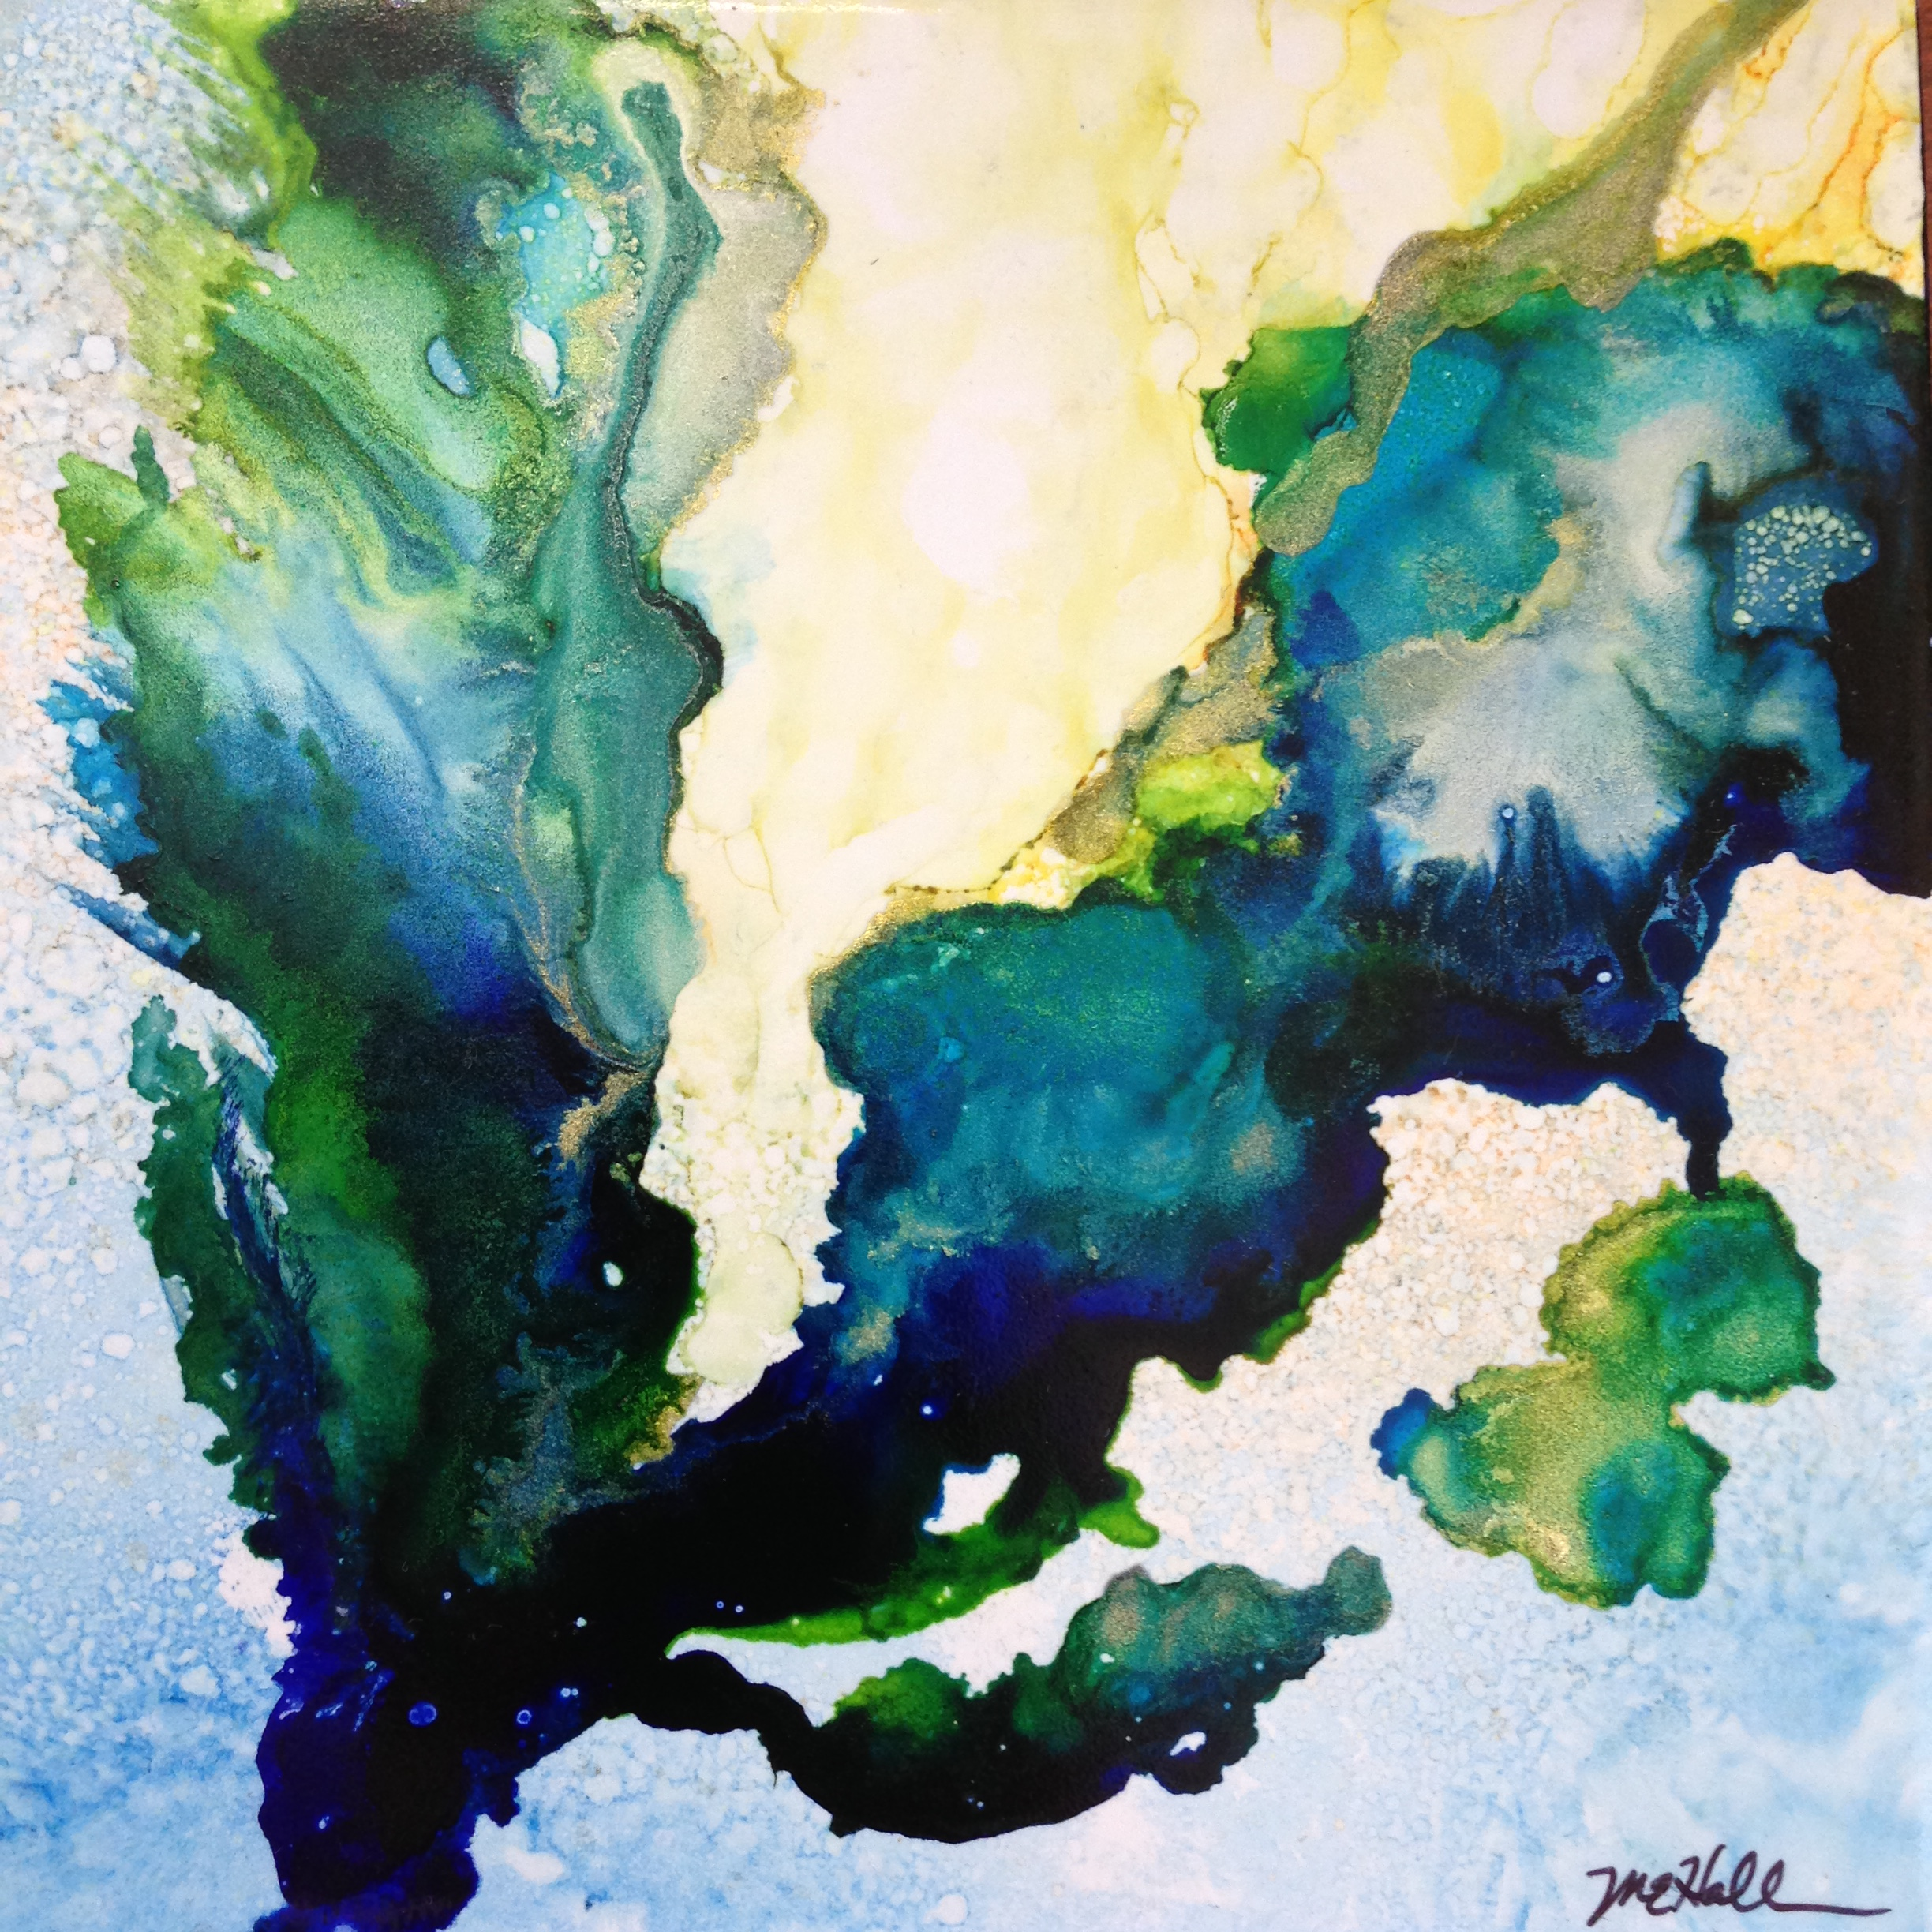 Alcohol Ink Painting 1: Reawakening Your Creativity! (incl